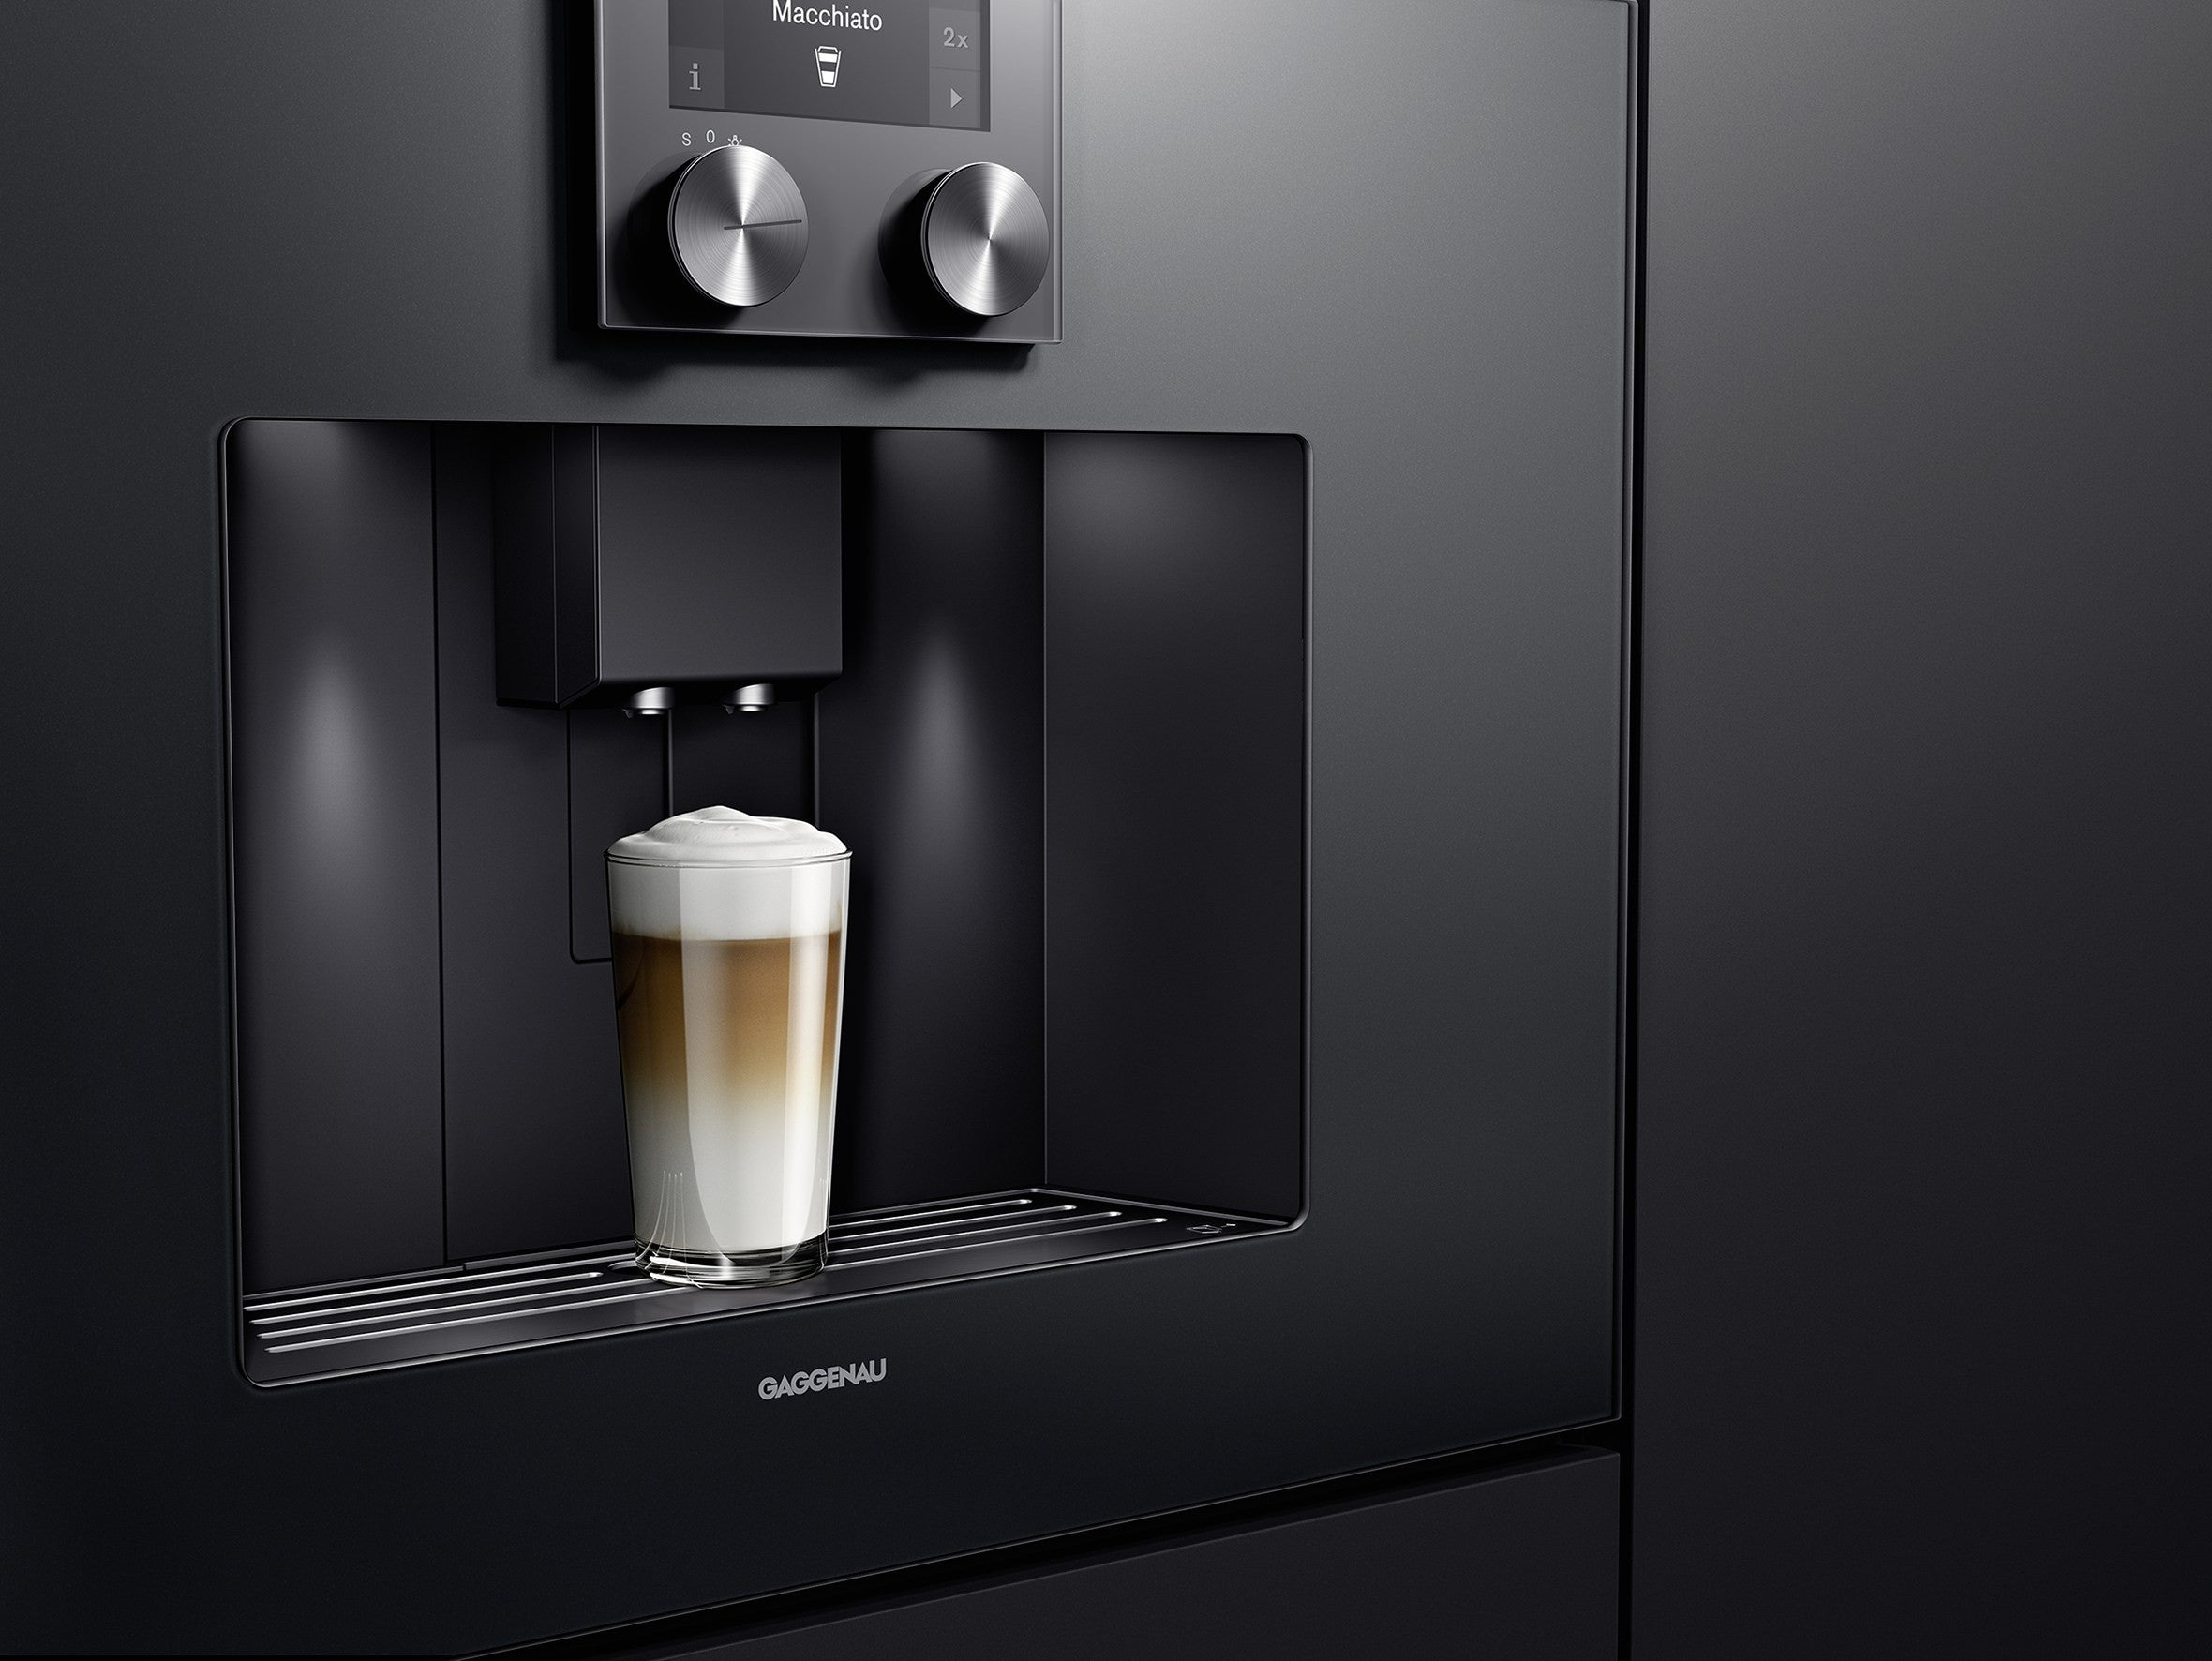 Gaggenau 400 series coffee machine from Abitalia South Coast